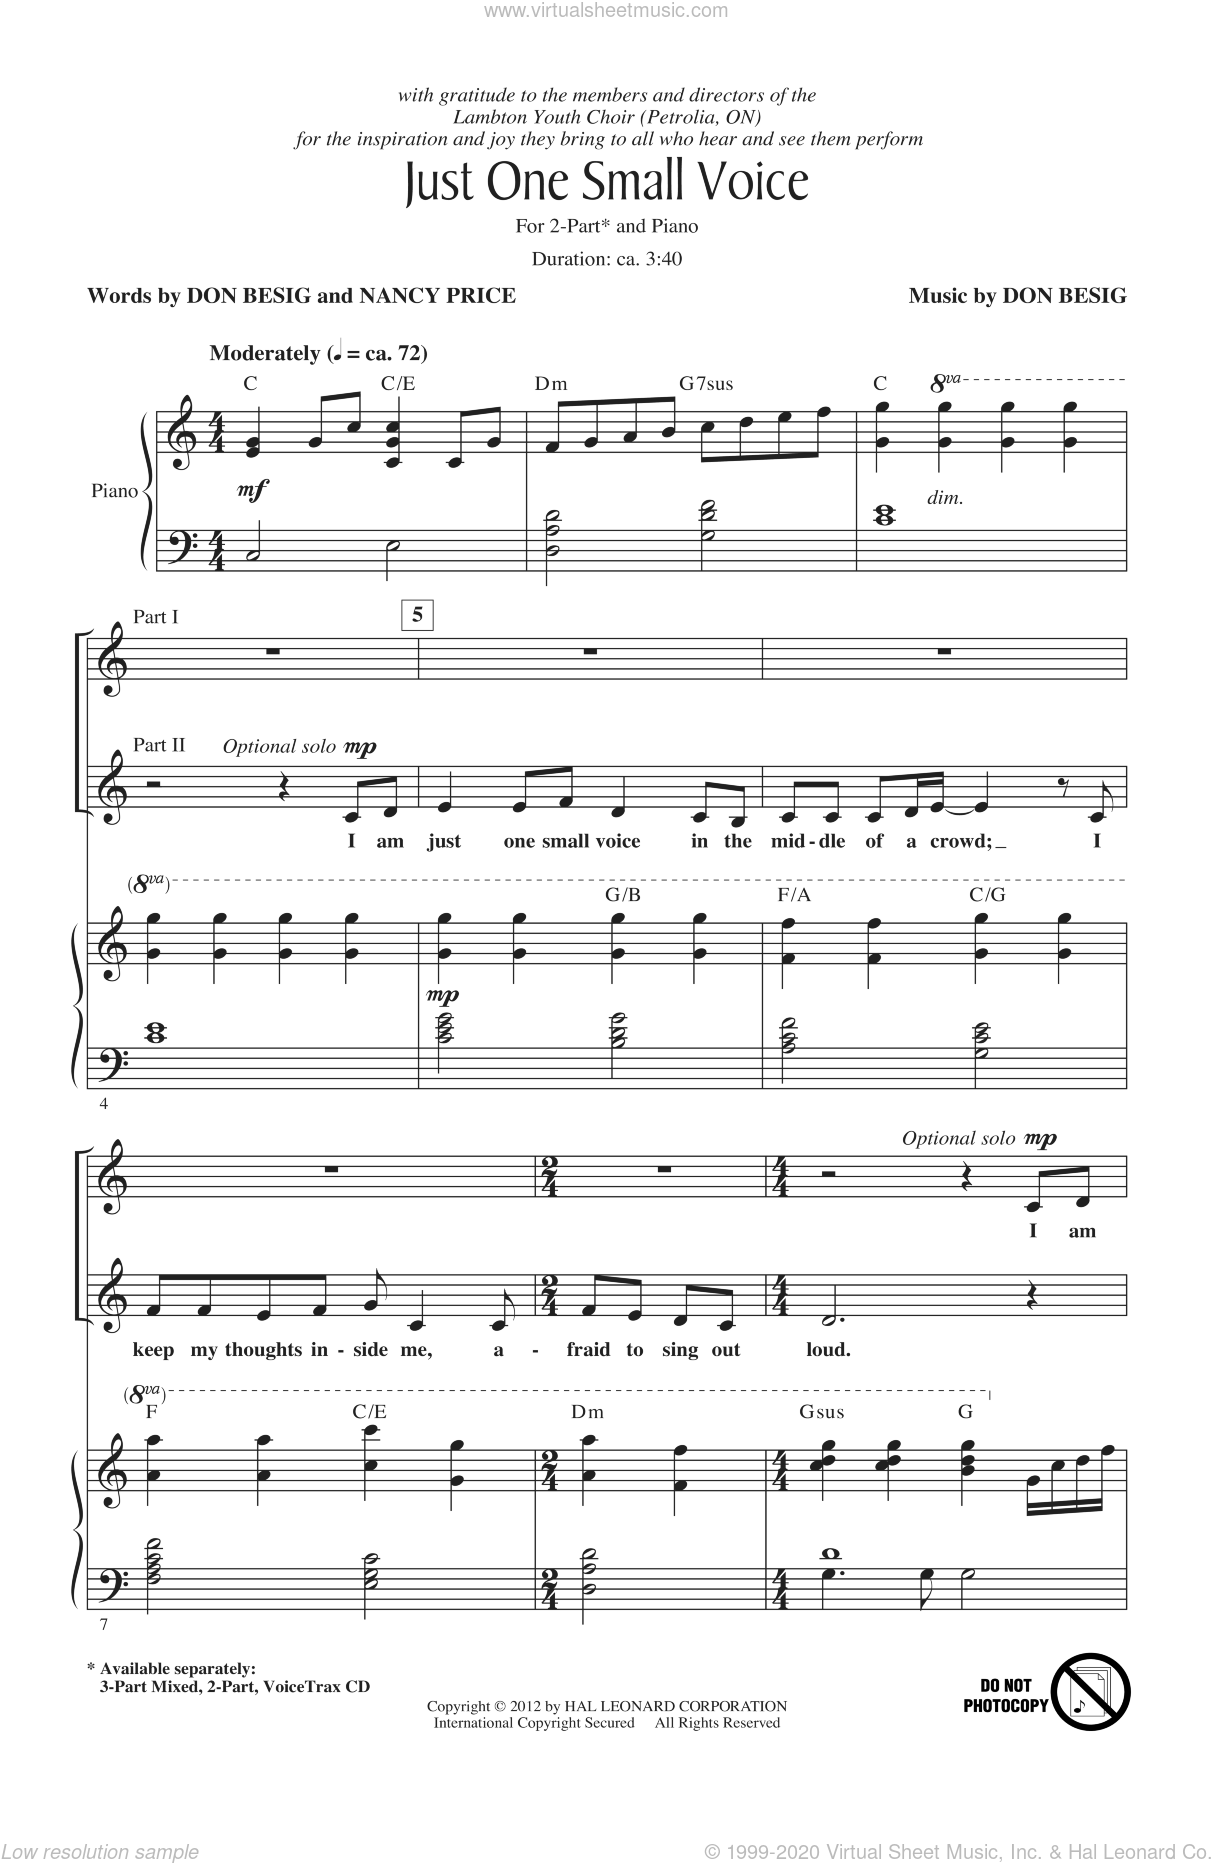 Just One Small Voice sheet music for choir (2-Part) by Don Besig and Nancy Price, intermediate duet